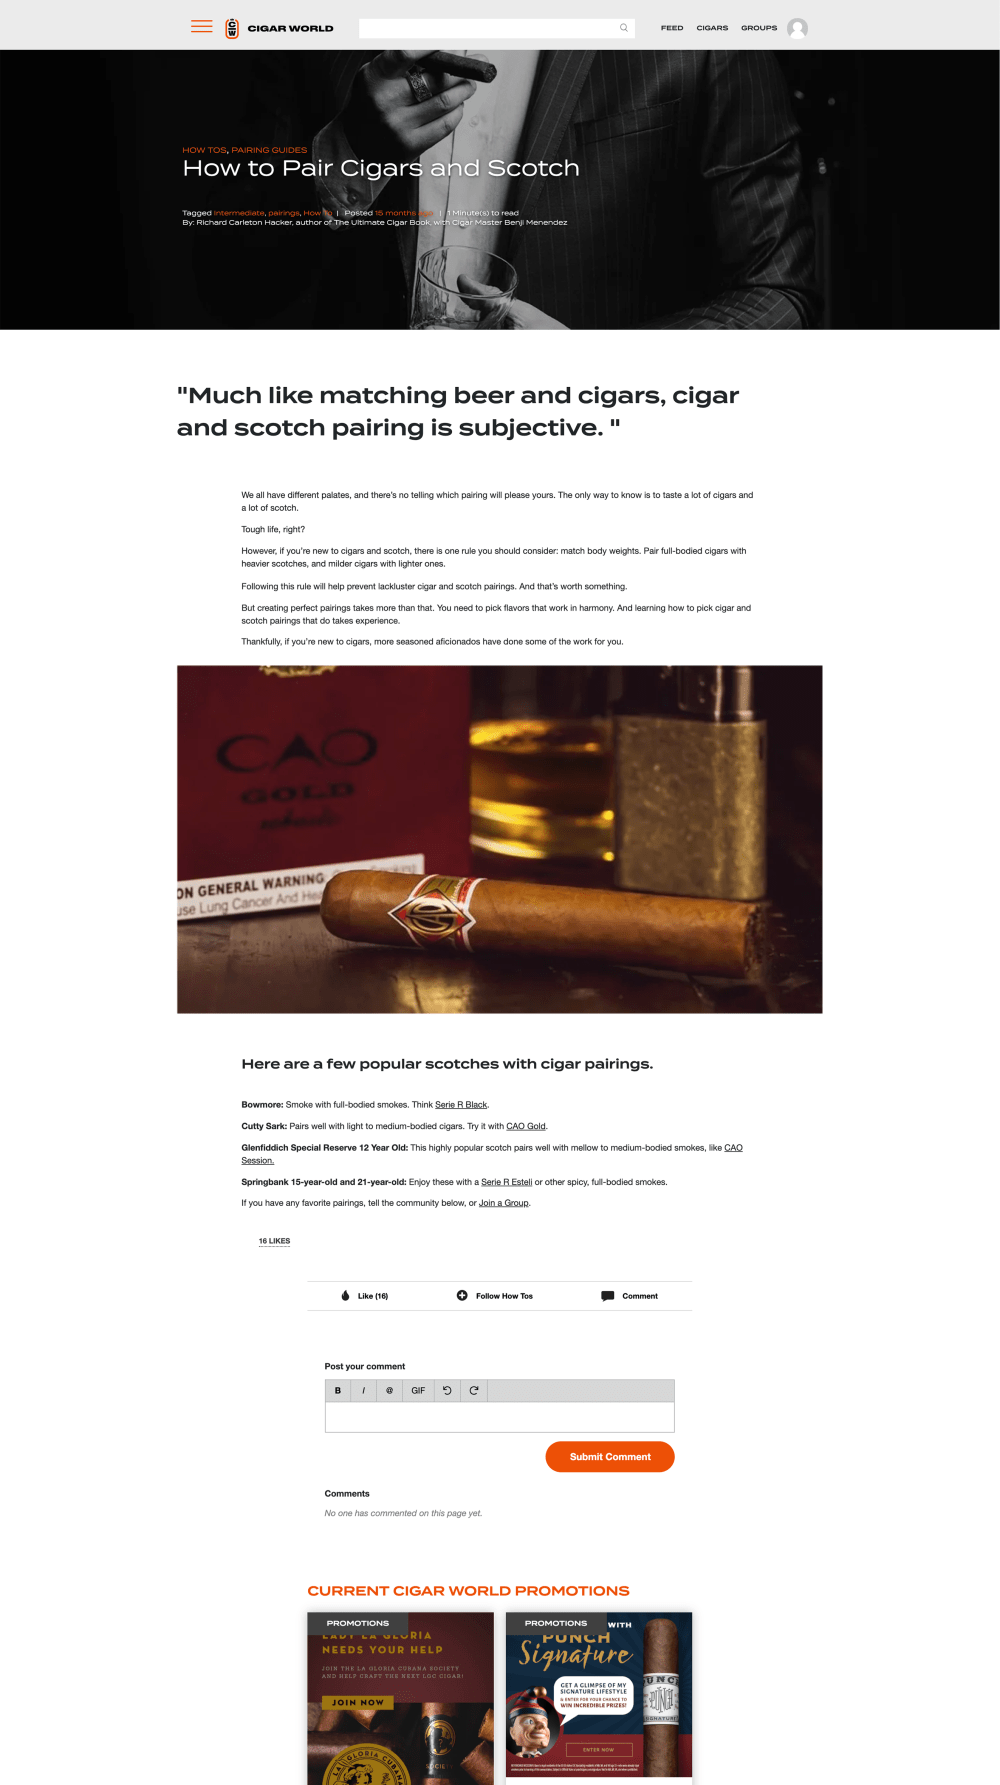 How to Pair Cigars and Scotch